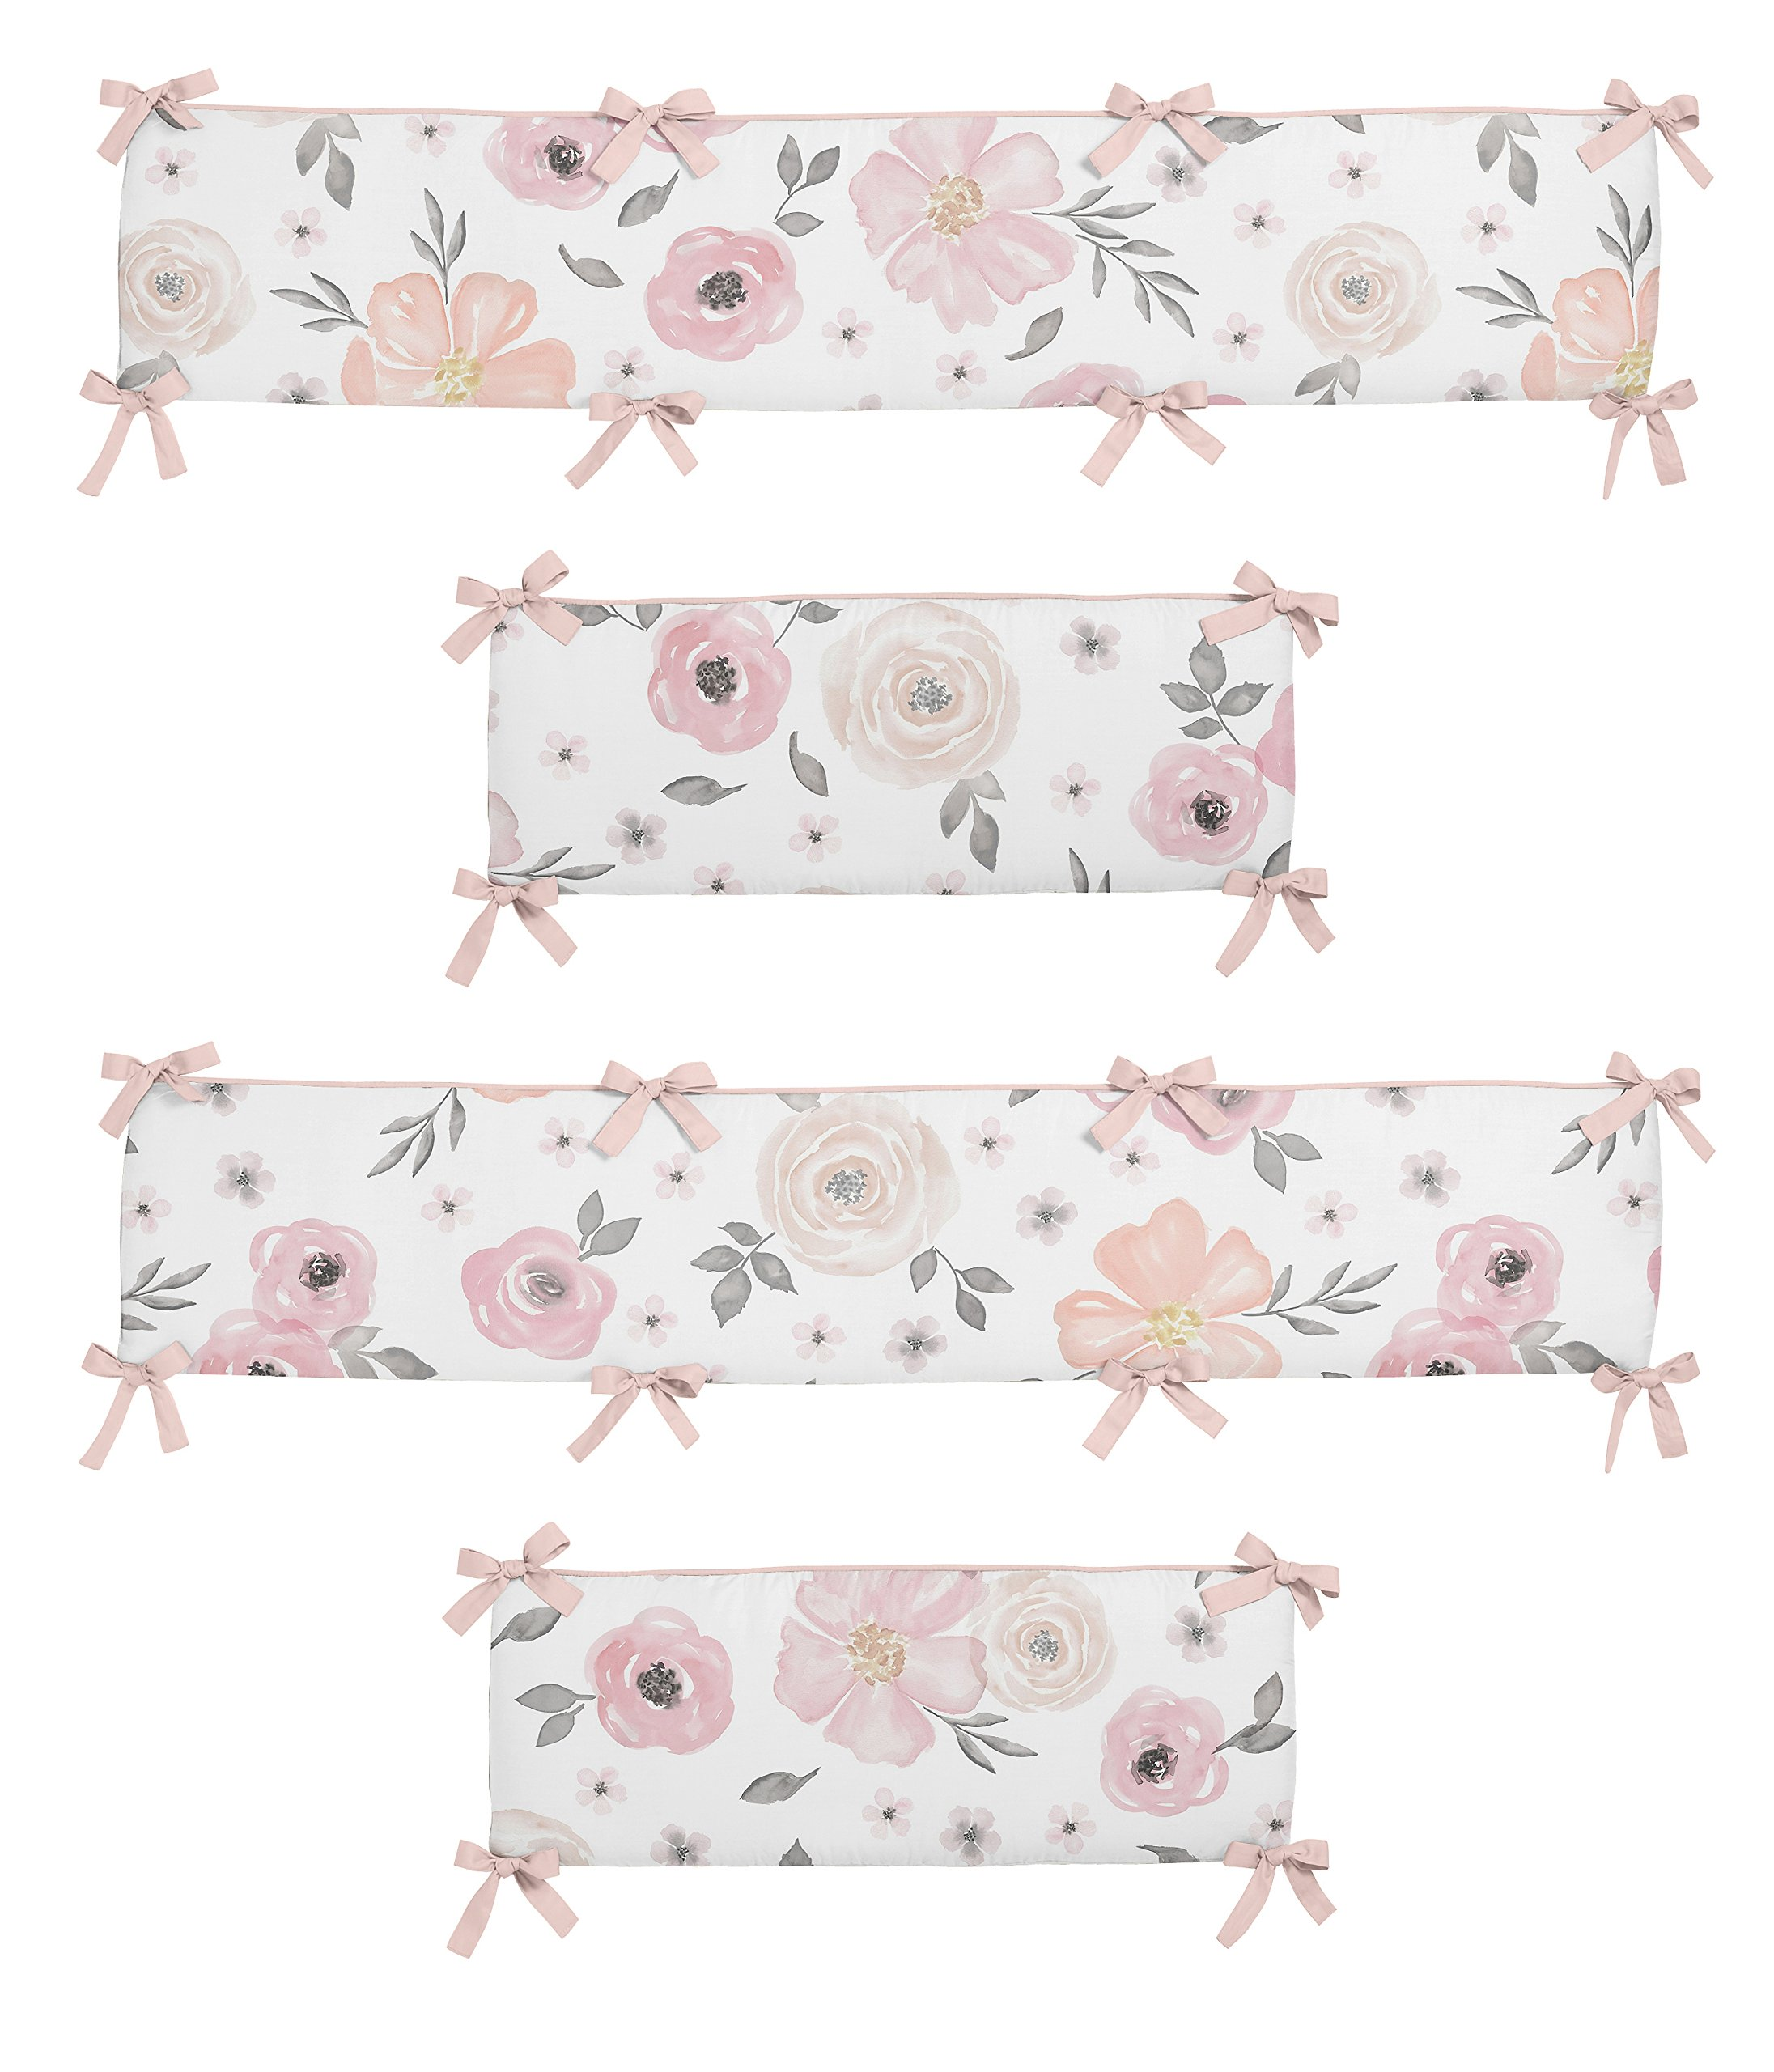 Sweet JoJo Designs Blush Pink, Grey and White Baby Crib Bumper Pad for Watercolor Floral Collection Rose Flower